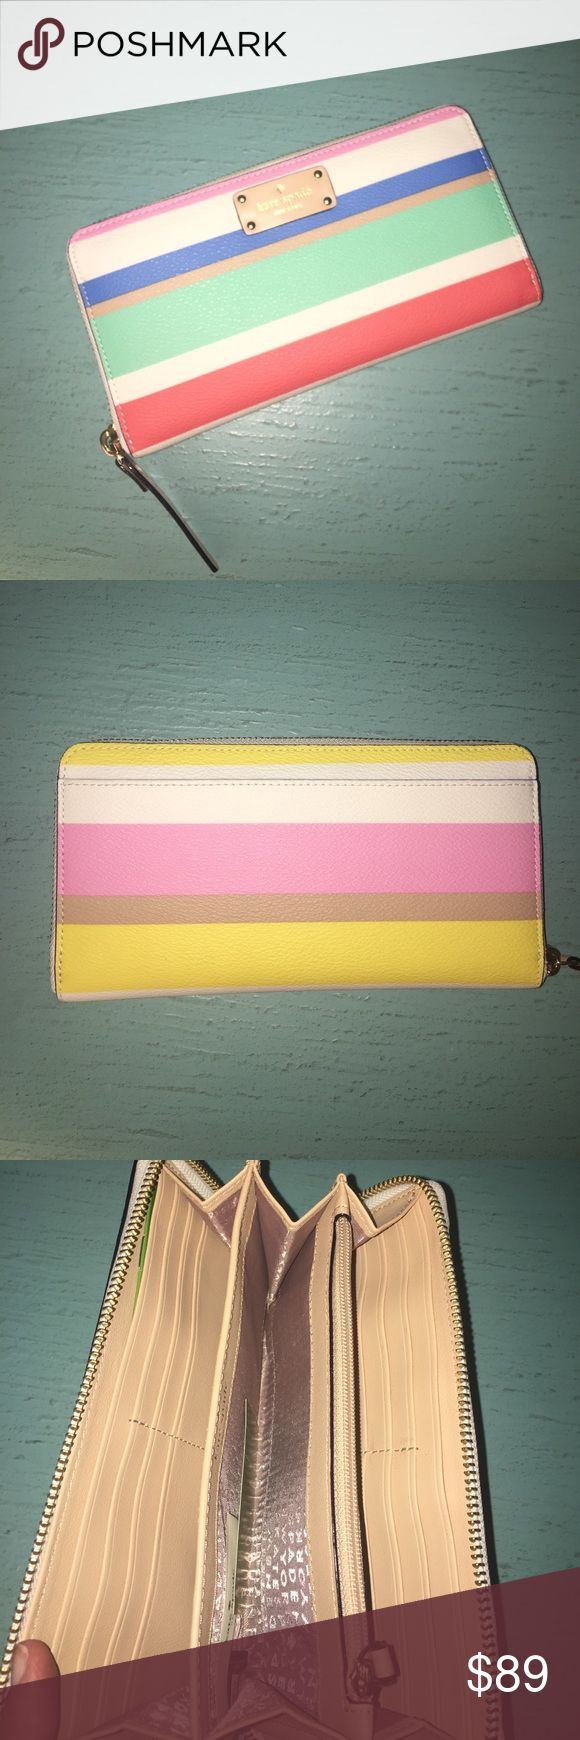 NEW Kate Spade Stripe Wallet NWT Perfext for spring! Cheerful stripes in a colorful pallet just make this Wallet adorable!!  Gold toned hardware Zip around closure; Logo and brand name license plate in front Full length slip pocket in the back Gusseted interior features custom fabric, 12 card slots, 2 slip pockets, 1 zip pocket, and 1 central open multifunction pocket. No Trades kate spade Bags Wallets